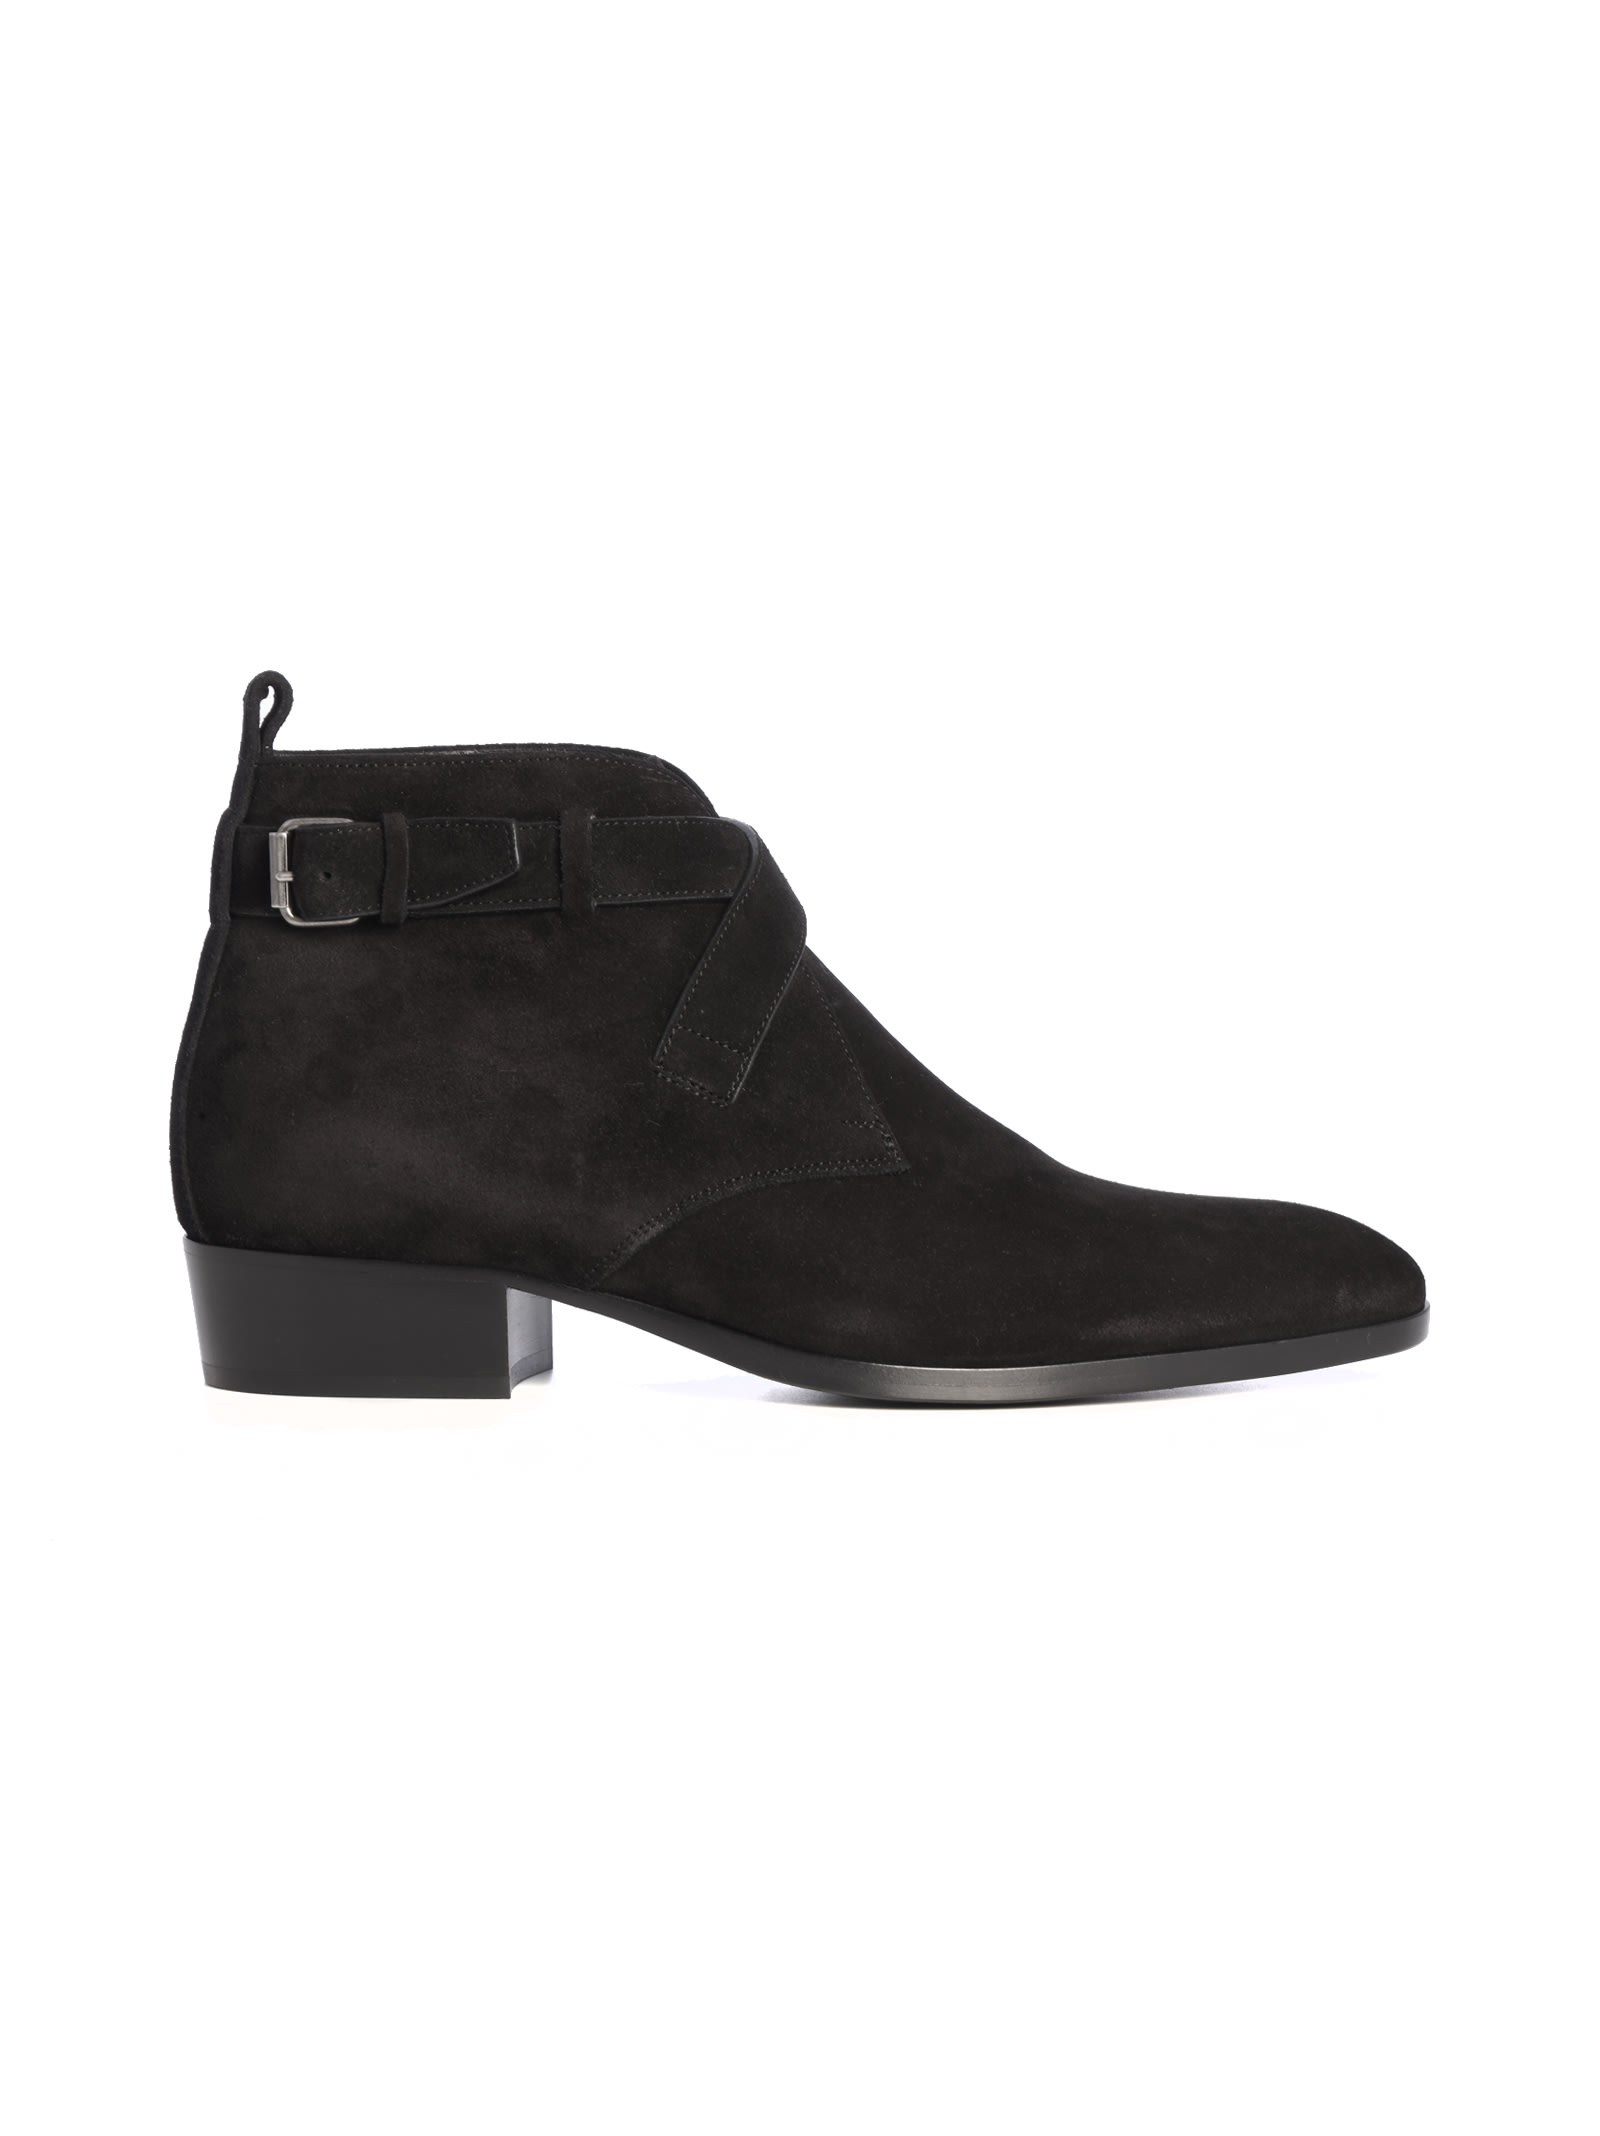 Saint Laurent Wyatt Suede Bootie